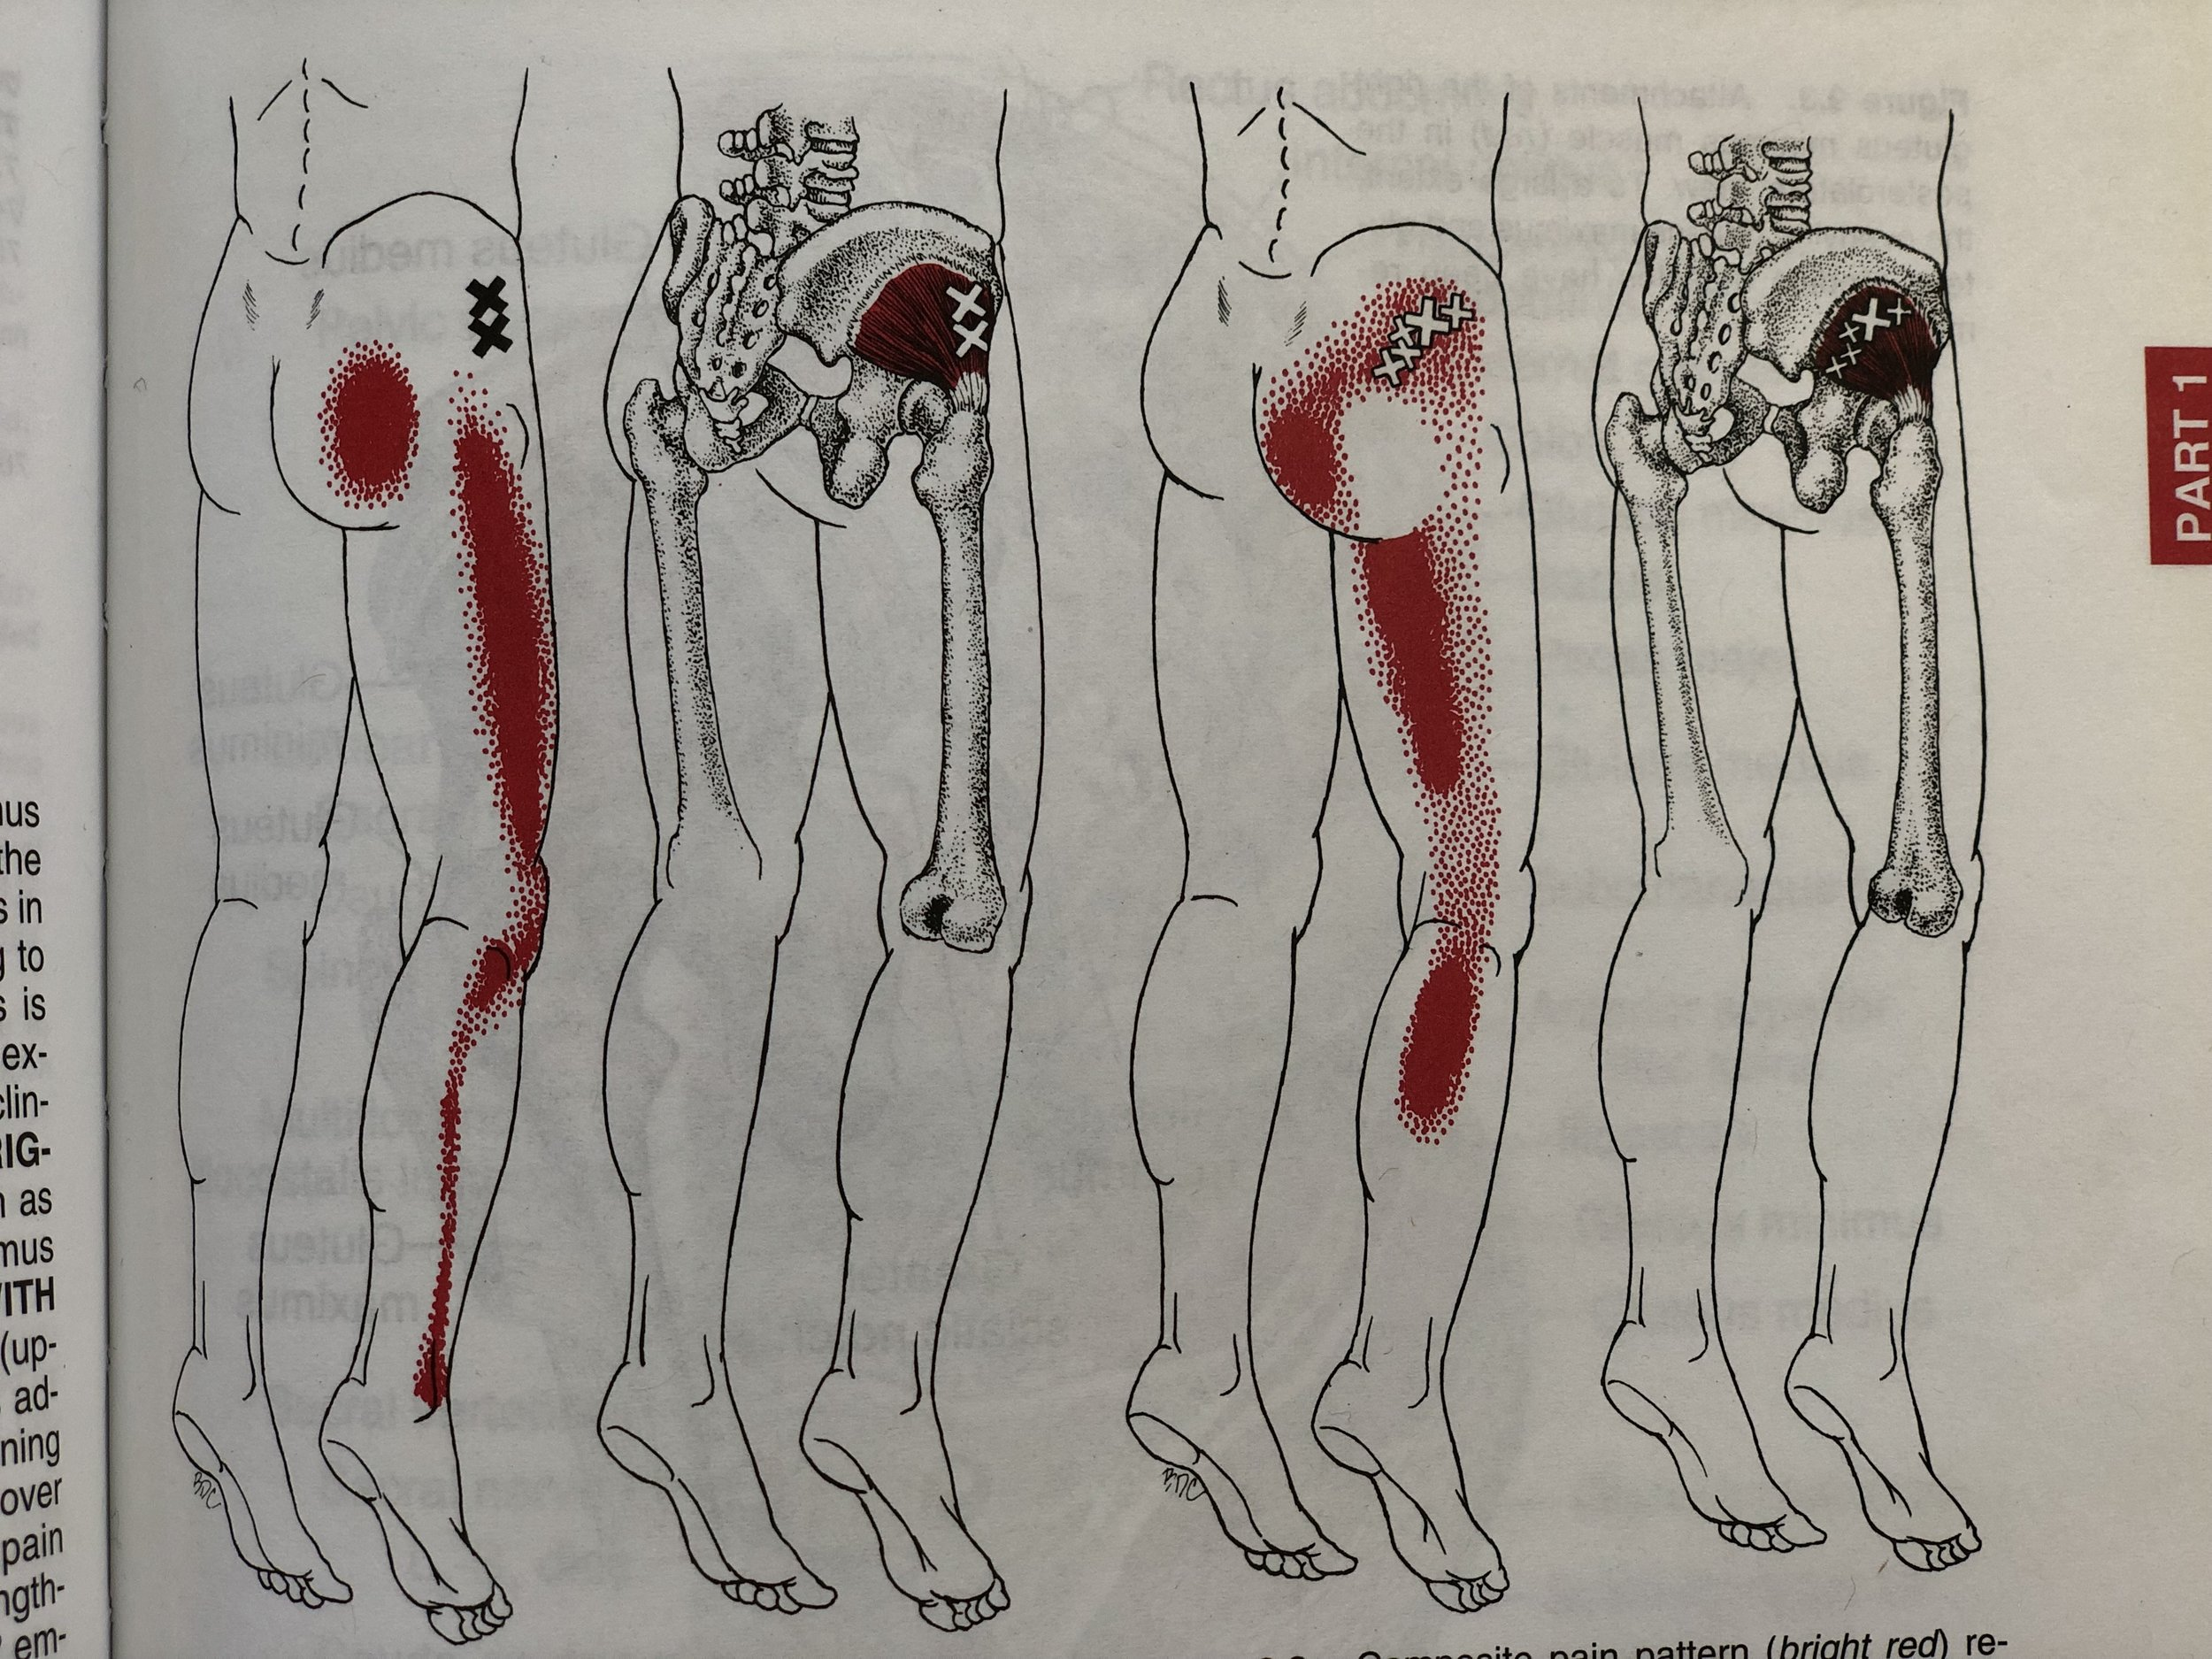 Glute Minimus Trigger Point referral pain pattern - Travell & Simons Myofascial Pain and Dysfunction